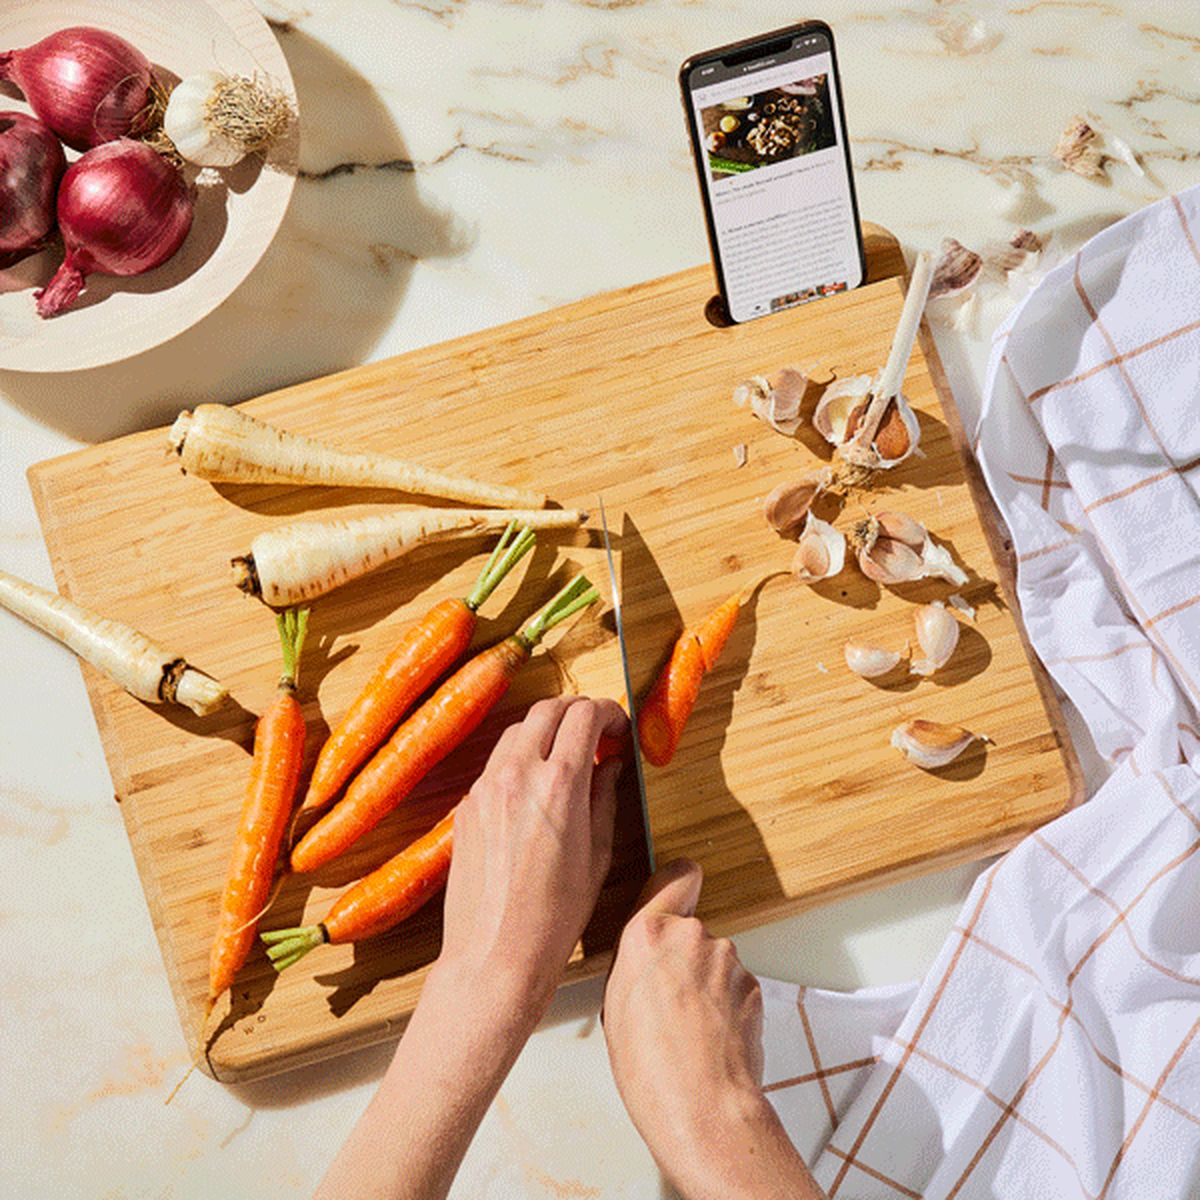 Wooden Cutting Board Care Guide How To Clean Wood Cutting Boards